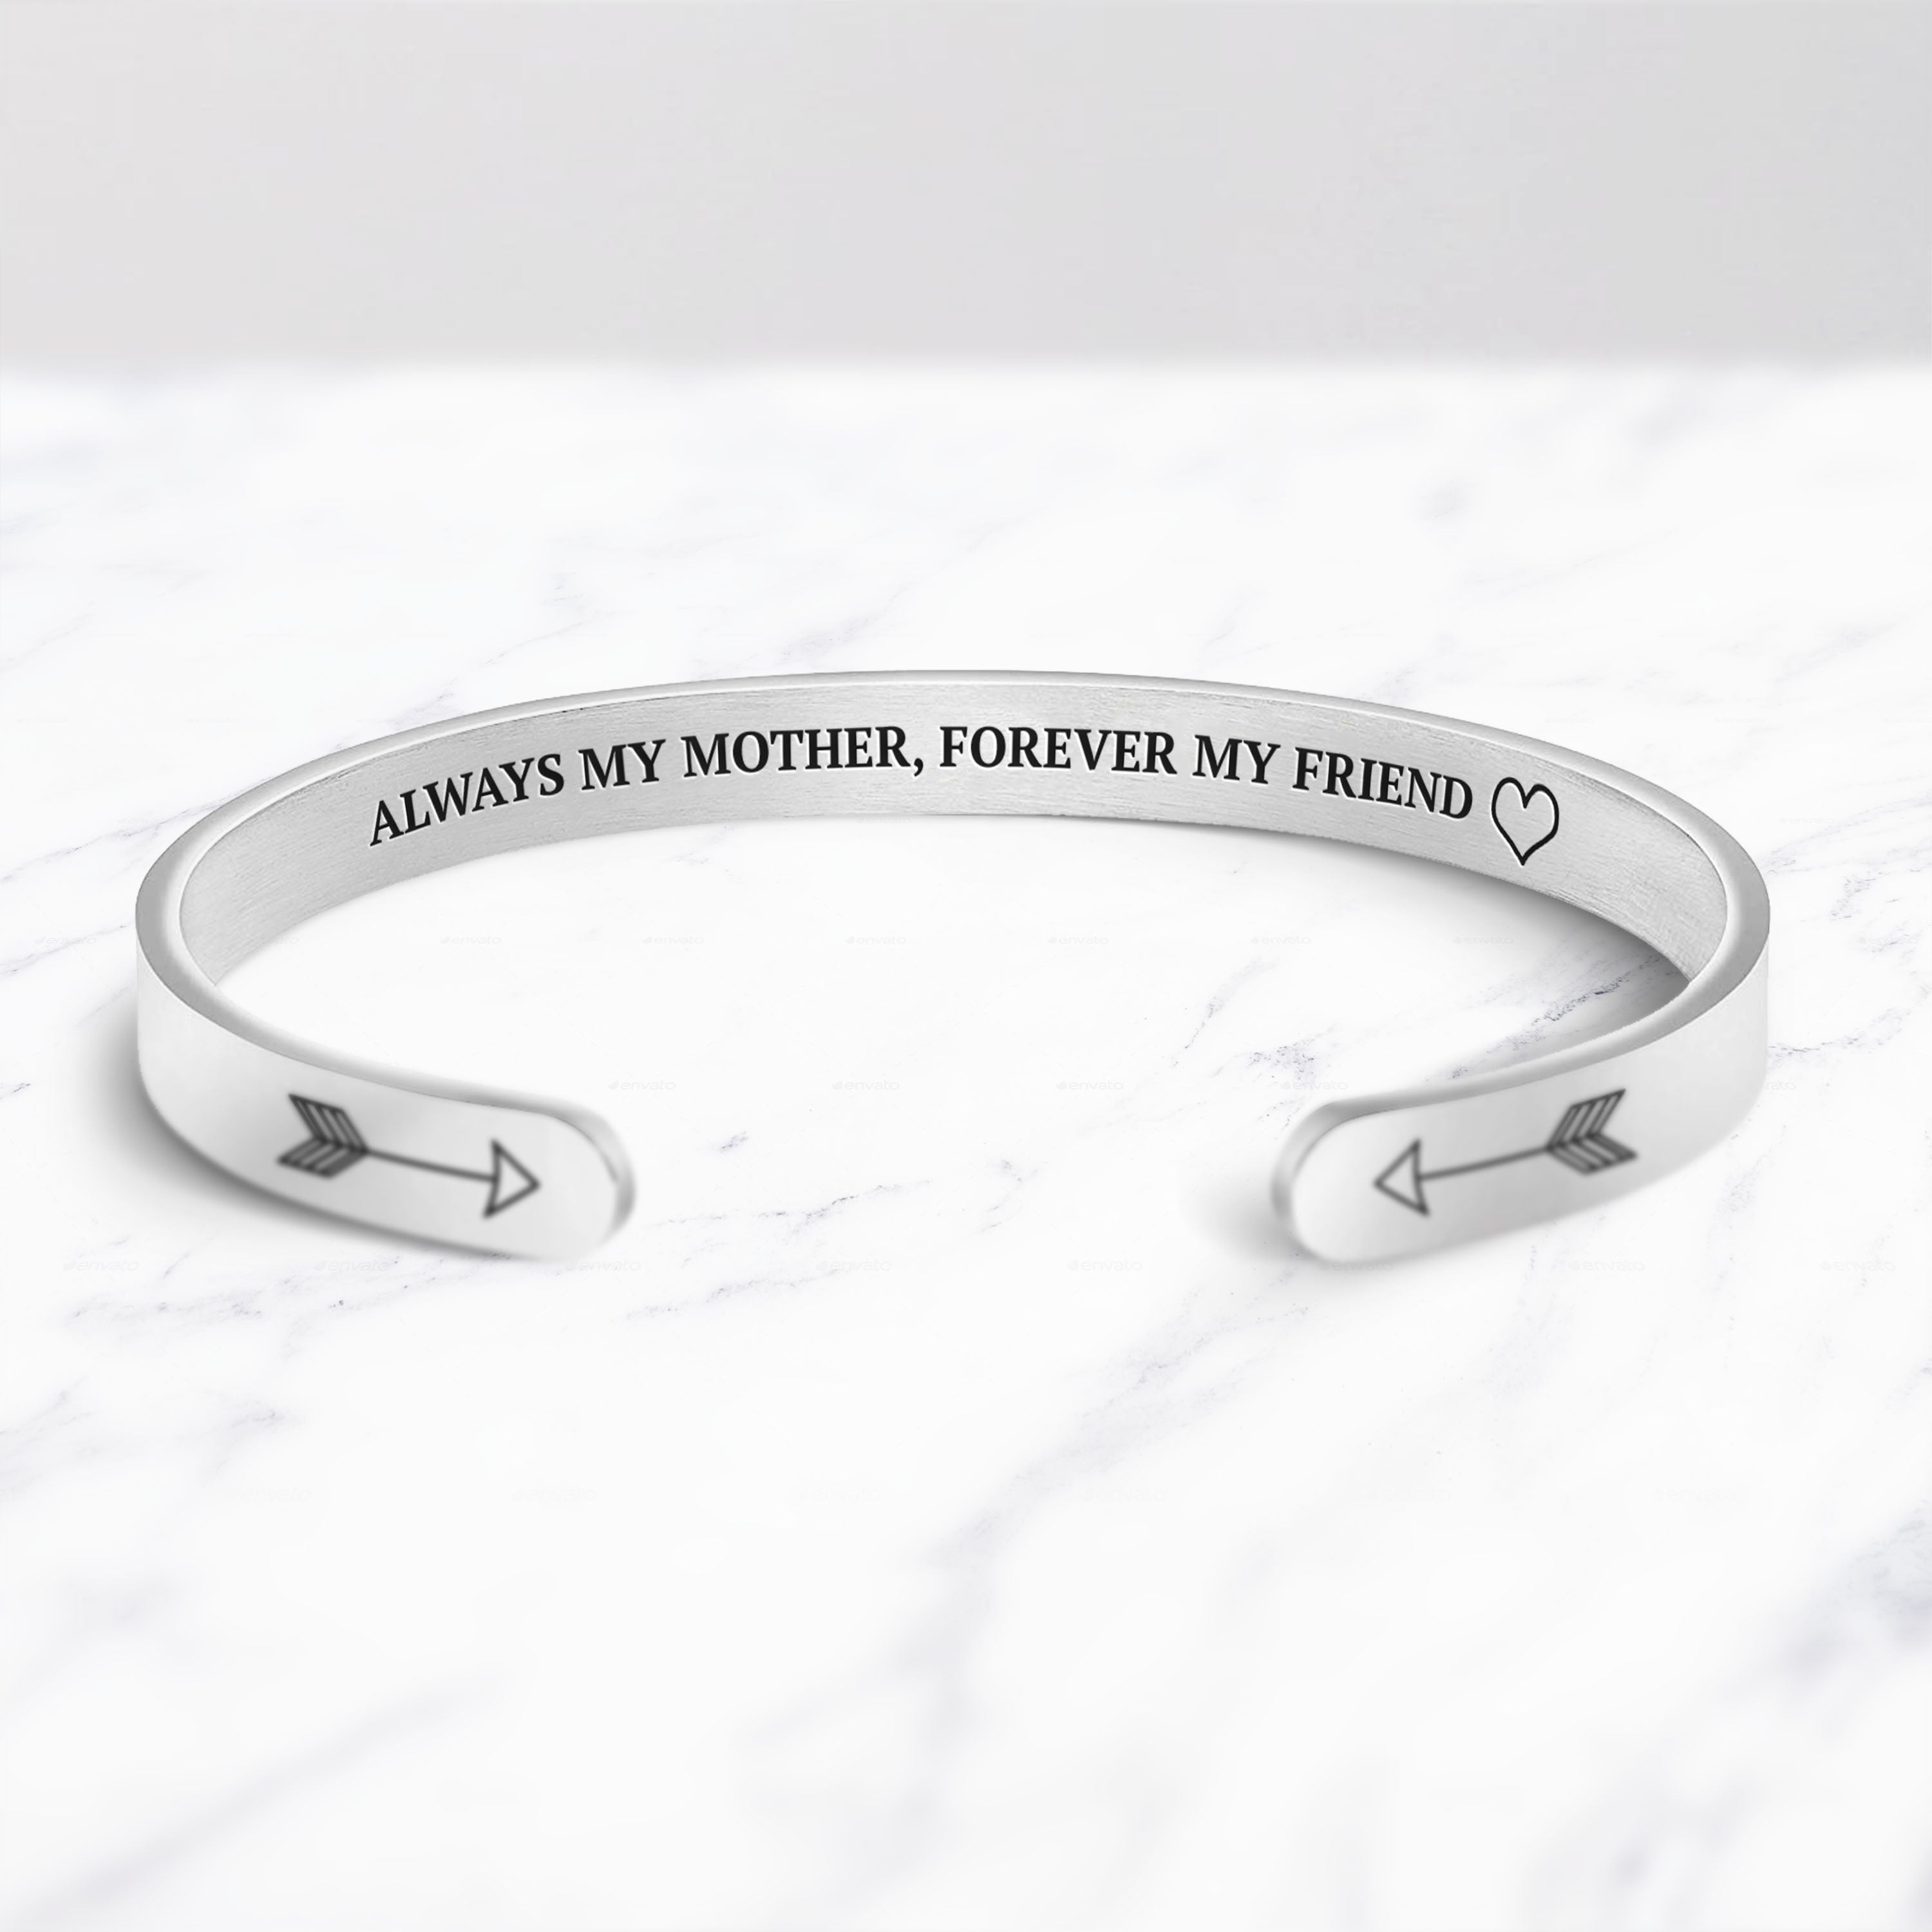 Always My Mother, Forever My Friend Cuff Bracelet bracelet with silver plating on a marble background